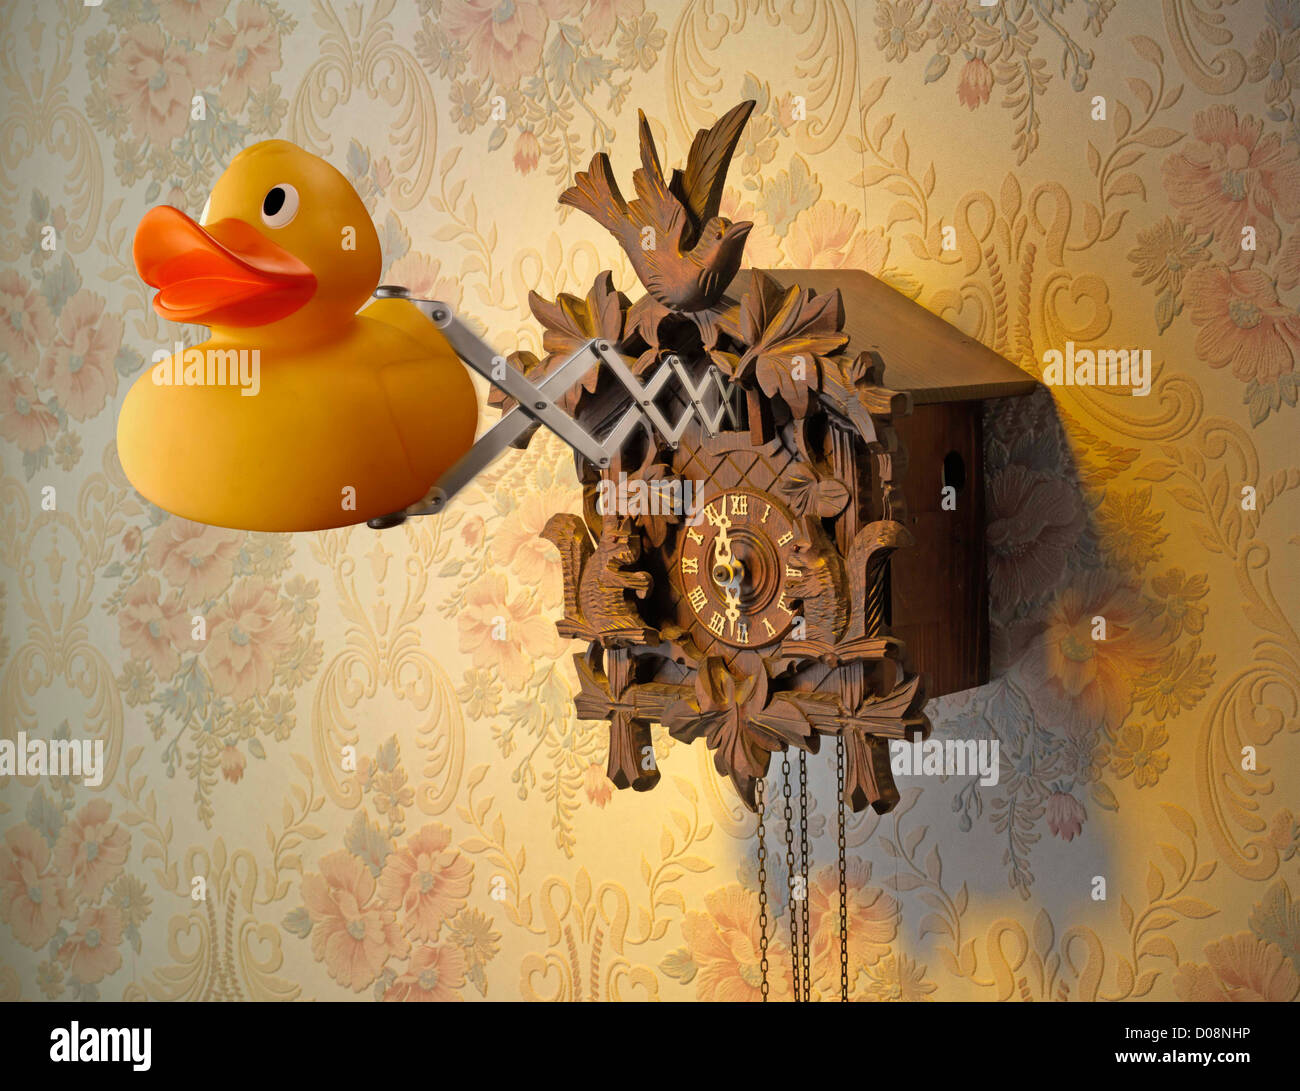 cuckoo clock with Rubber Duck coming out of Clock Stock Photo ...